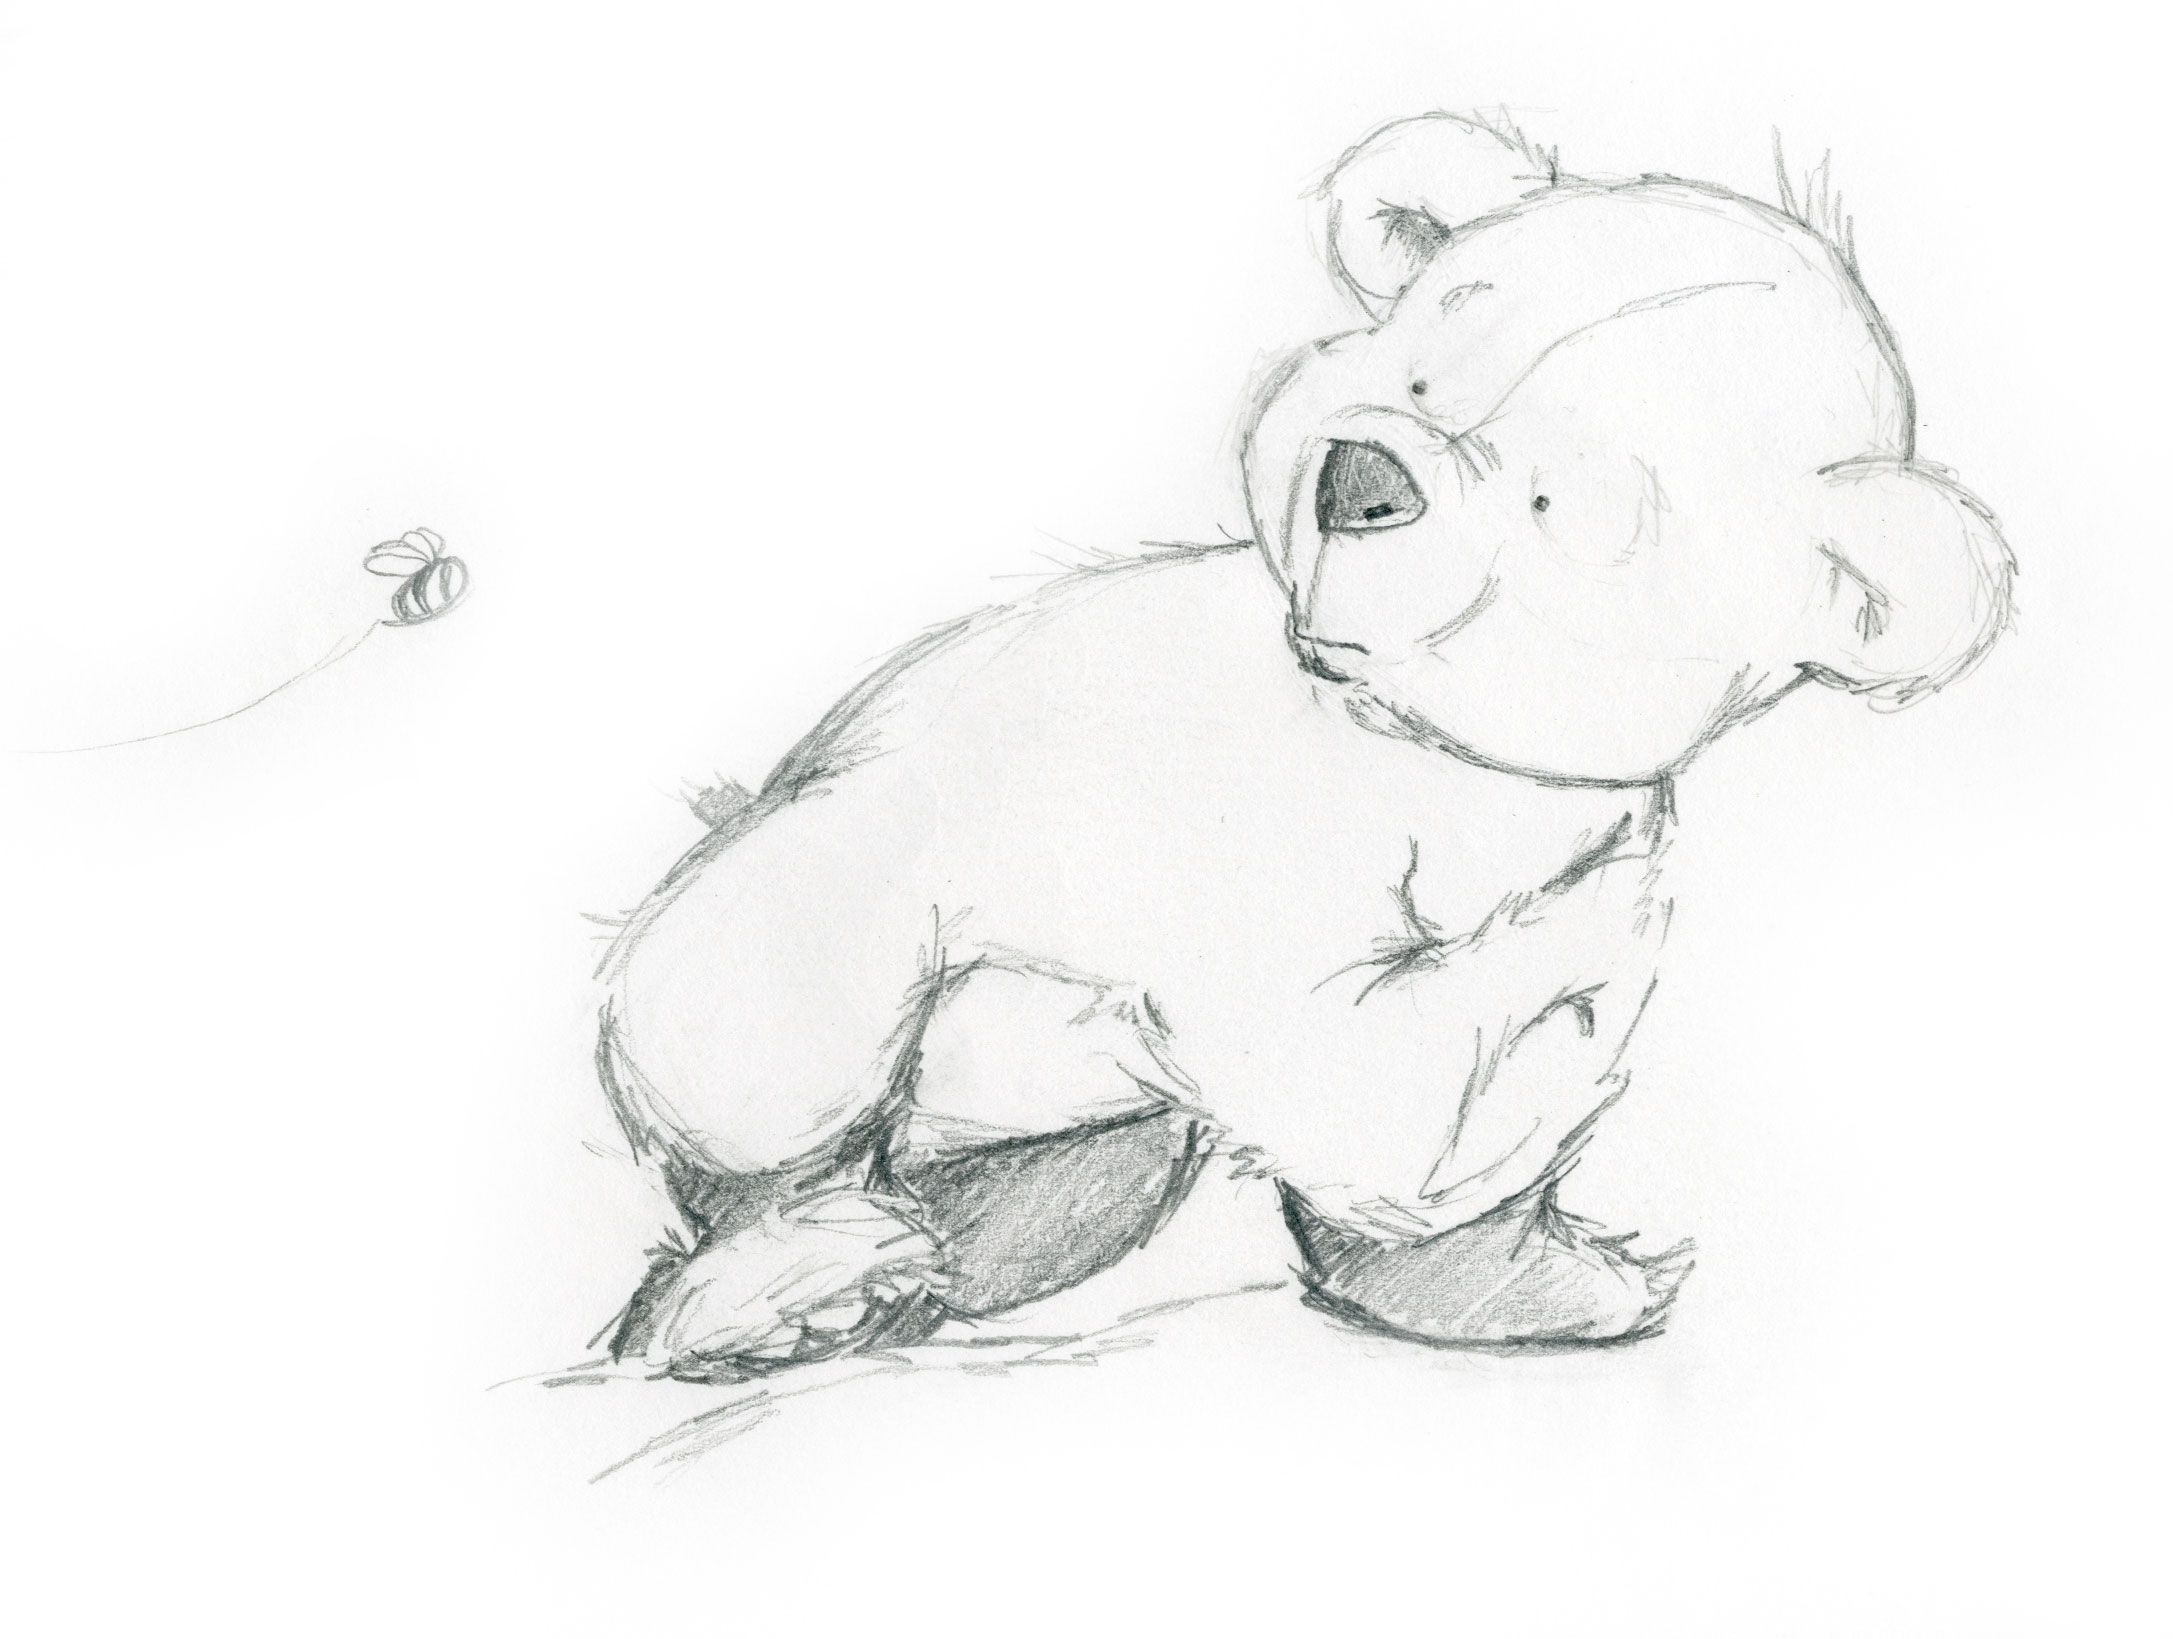 curious bear sketch